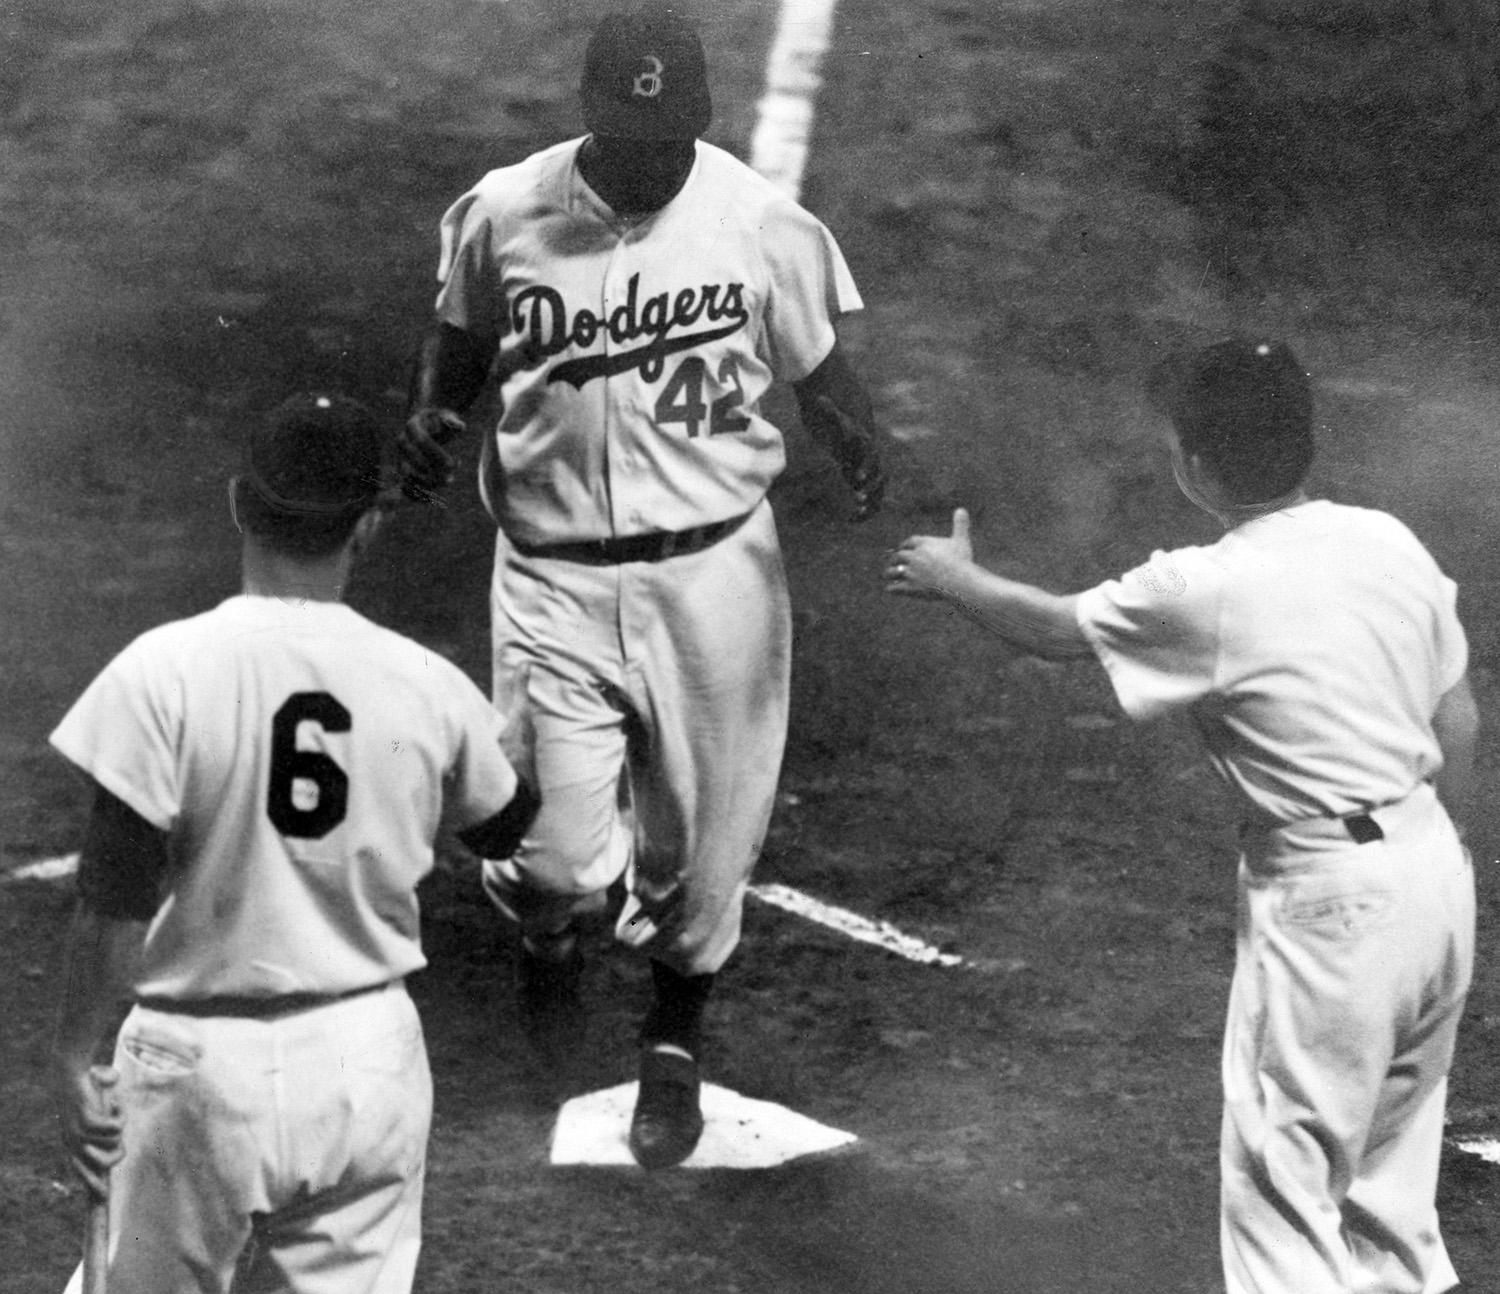 The Brooklyn Dodgers won six pennants in Jackie Robinson's 10 seasons. He was traded to the Giants following the 1956 season, but rather than play for the Dodgers' biggest rival, Robinson decided to retire. (National Baseball Hall of Fame and Museum)